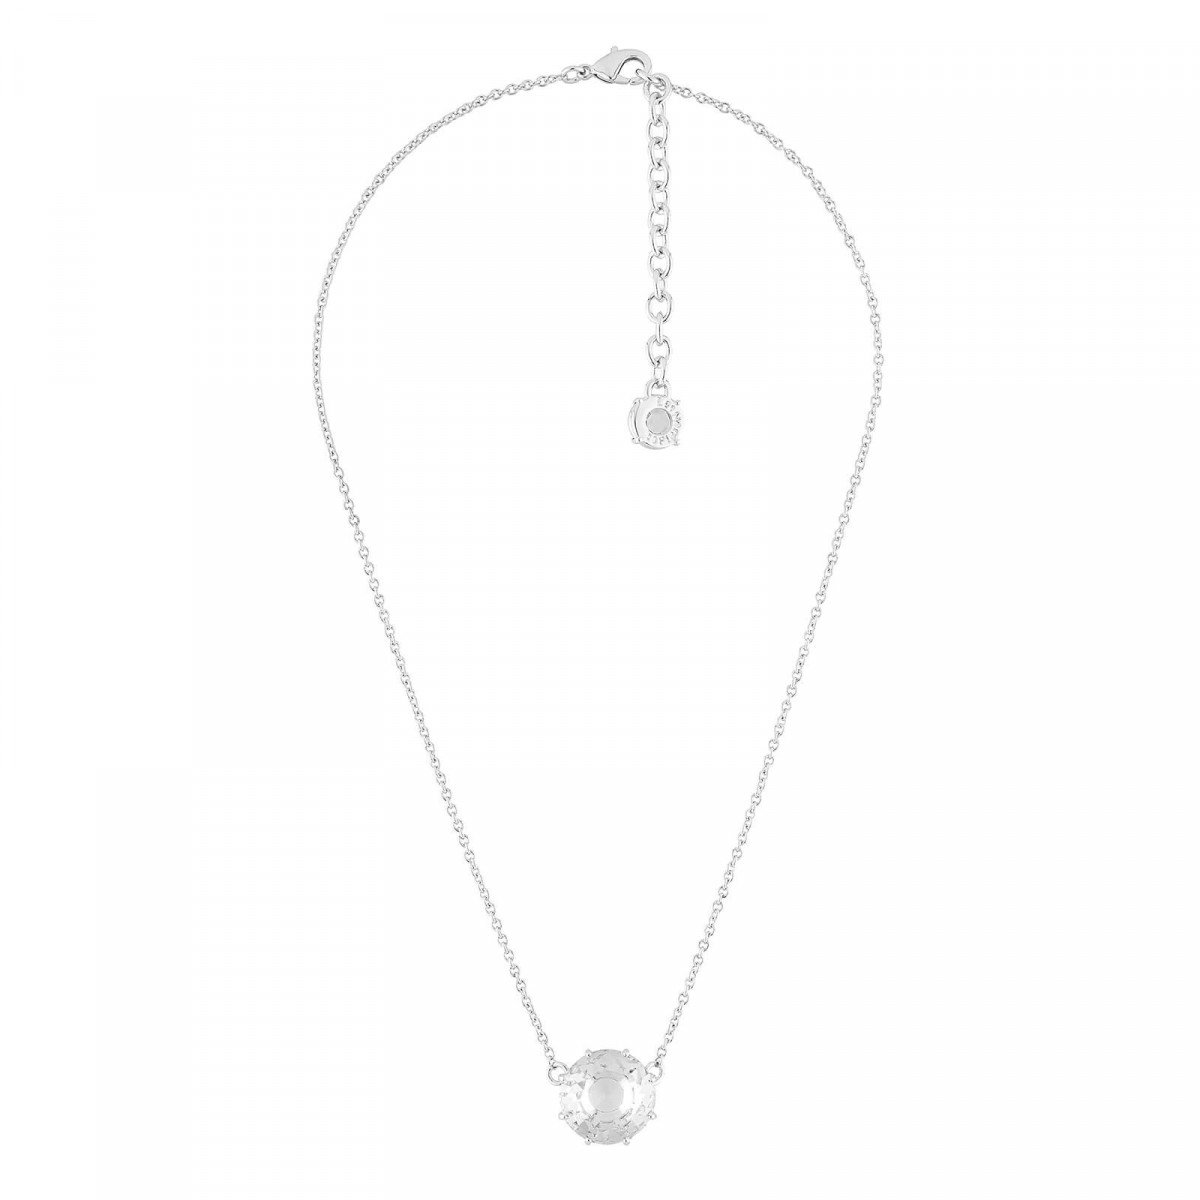 Colliers Pendentifs Collier Pierre Ronde Silver Cristal